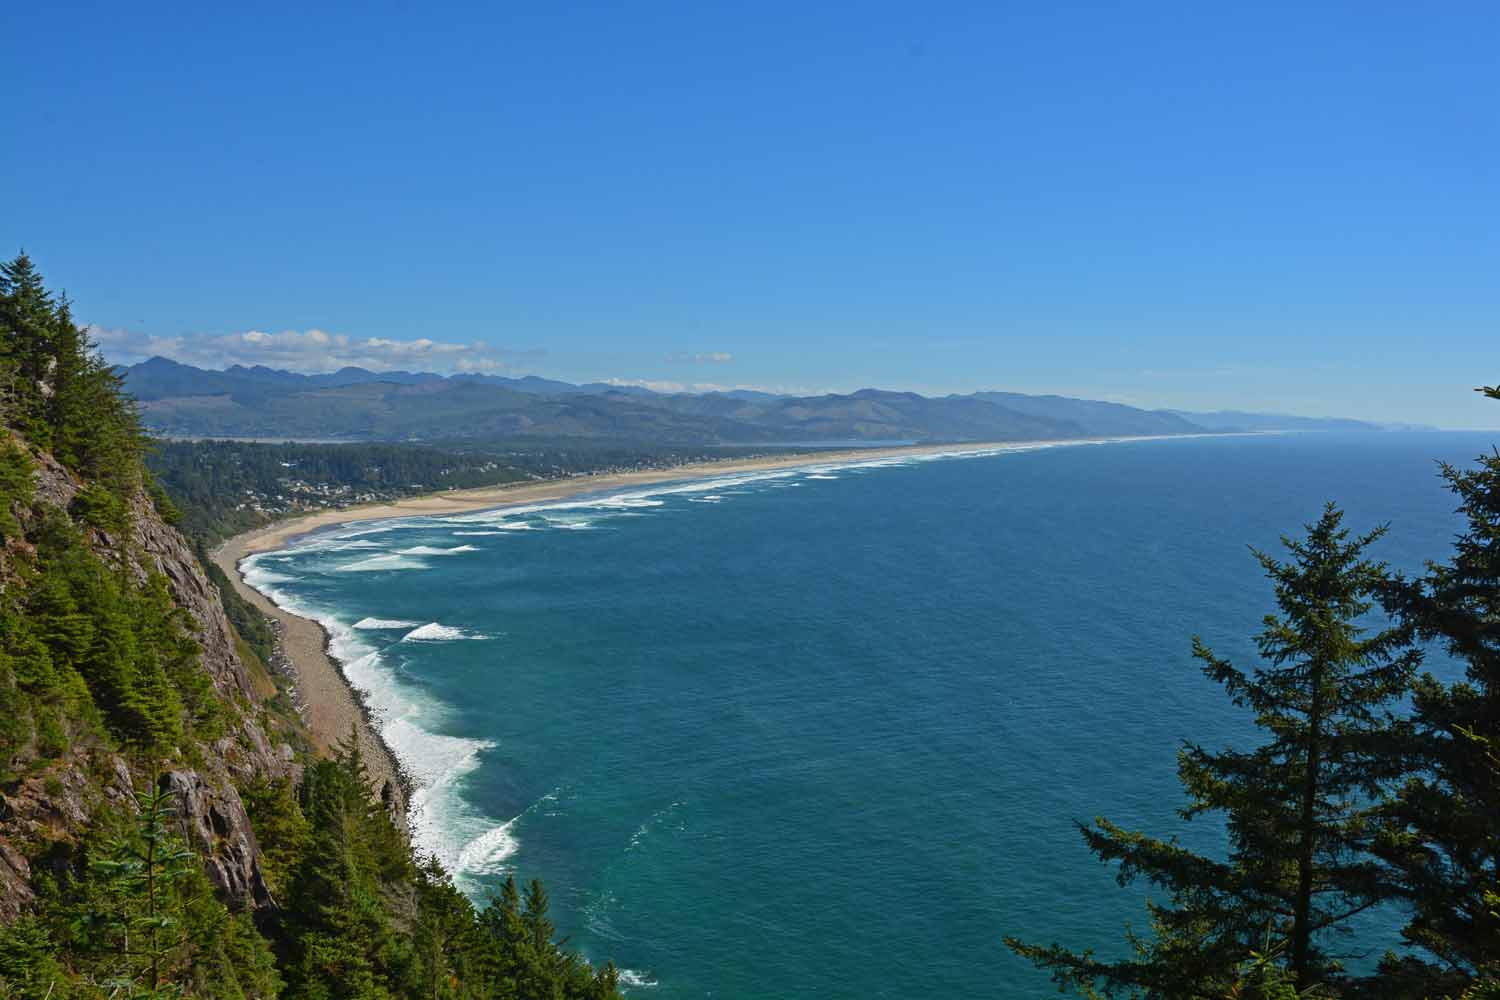 Oregon State Park system provides many well done turn outs and camping opportunities.  This shot has taken from a strategically placed view point.